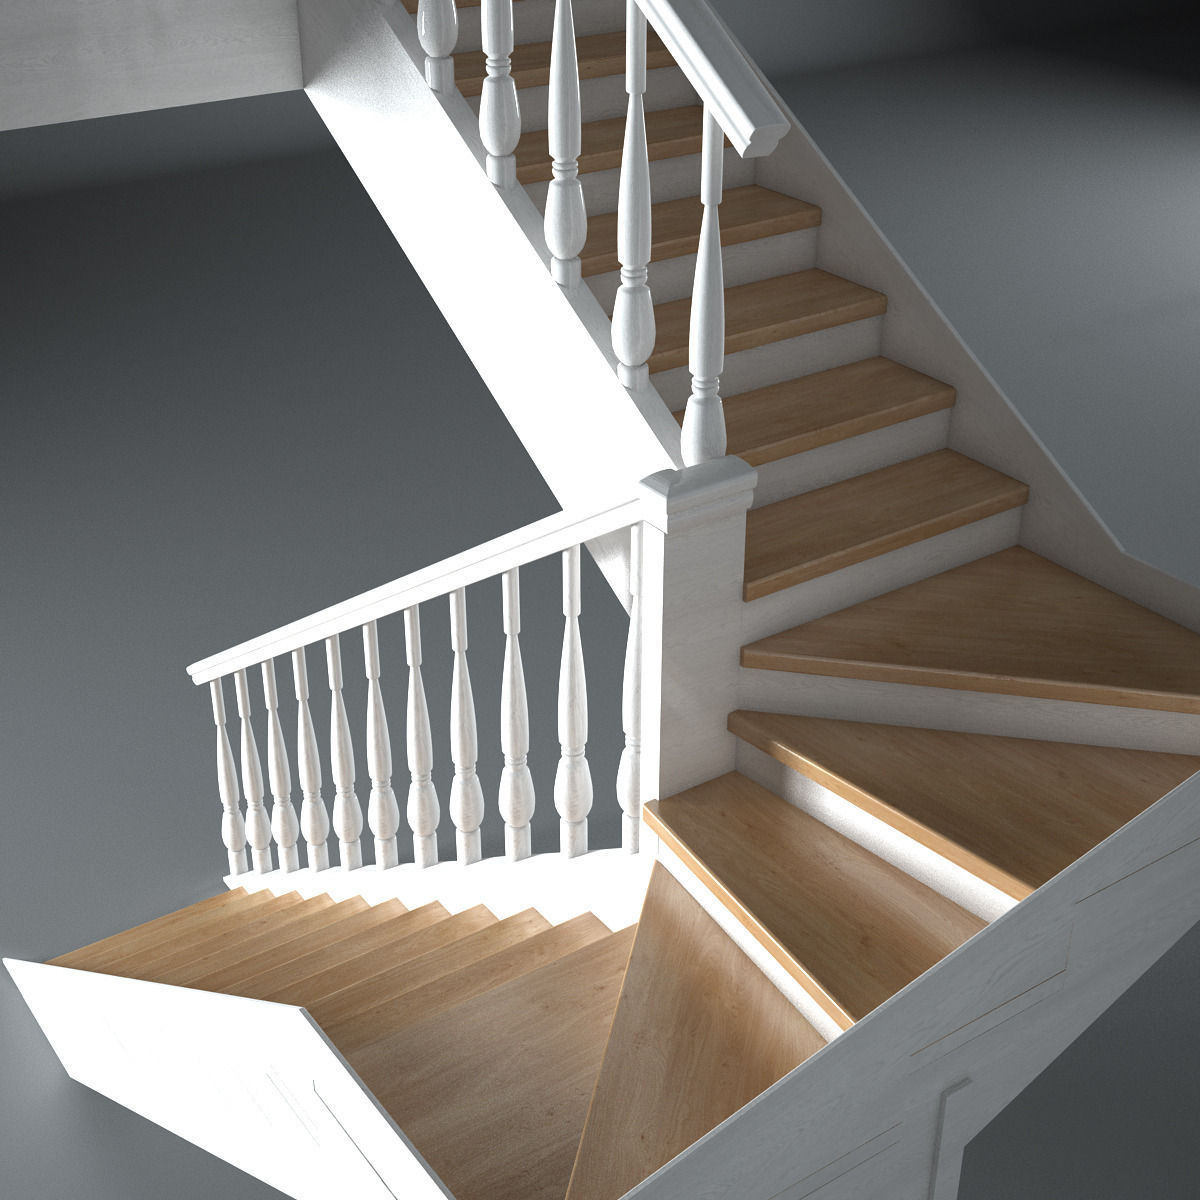 wooden stairs 3d model max obj mtl 3ds fbx 2 - Wooden Stairs